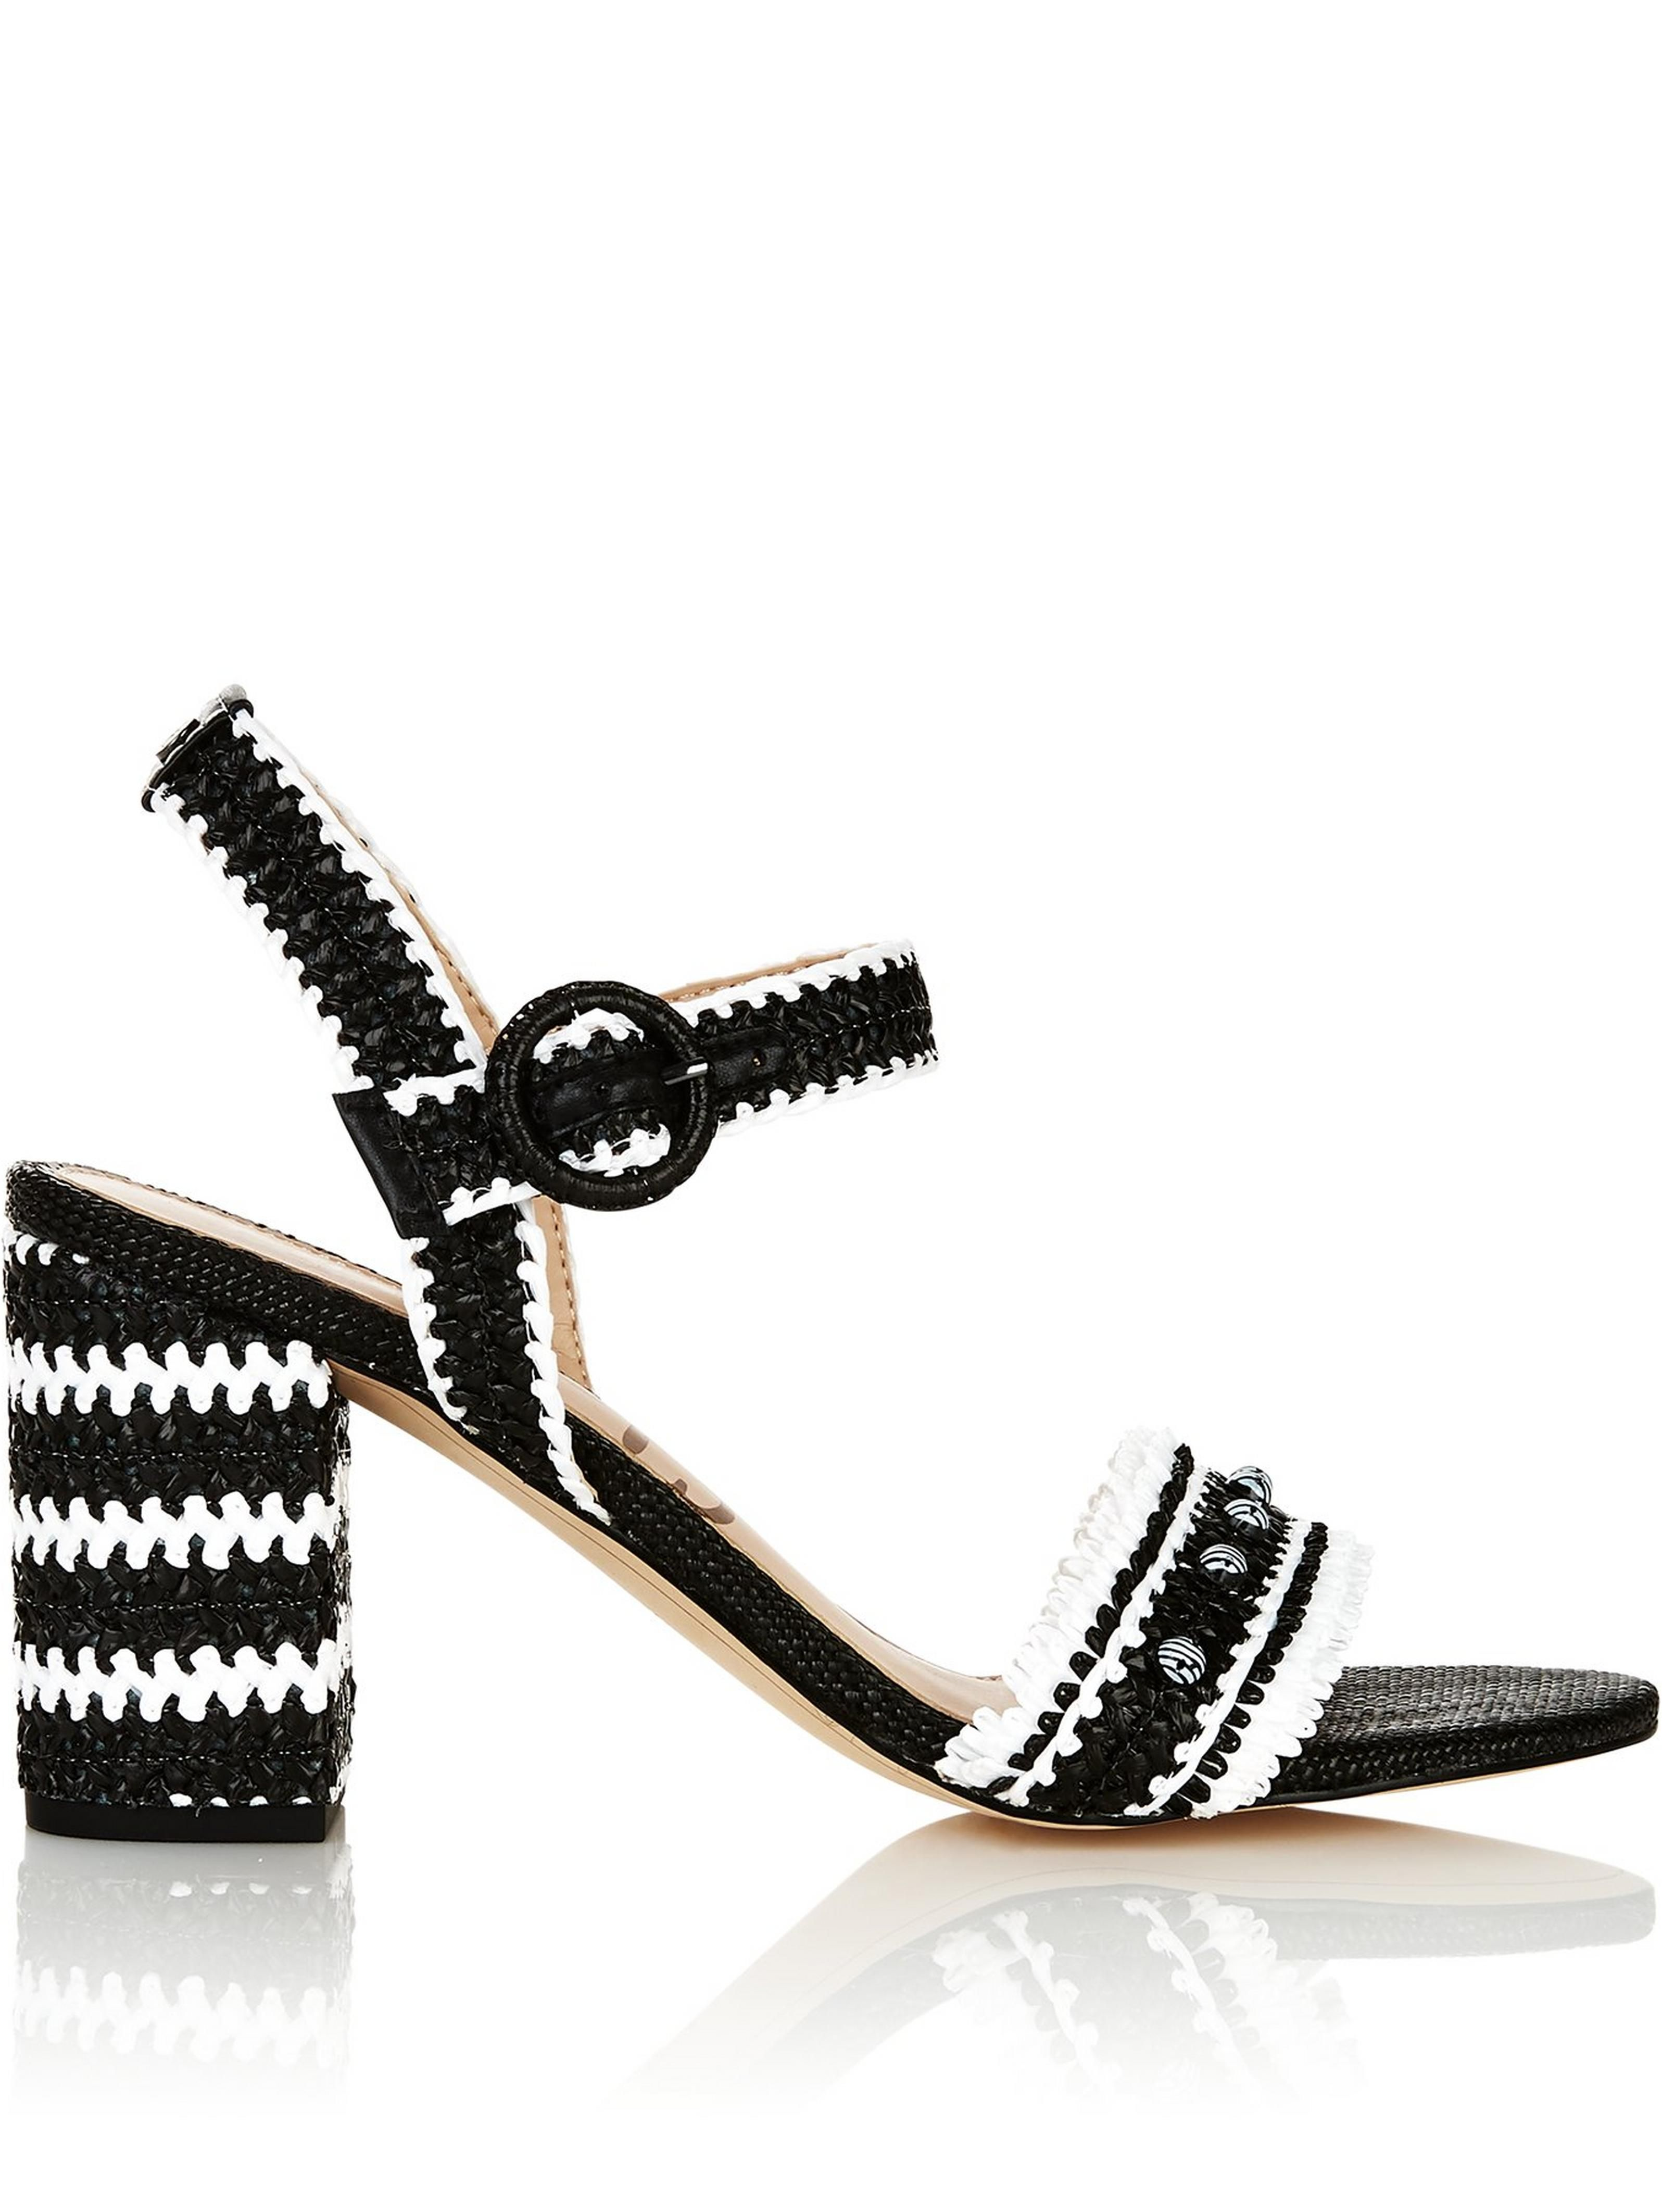 648298508ea1 SAM EDELMAN Olisa Heavy Woven Raffia Block Heeled Sandals- Black White